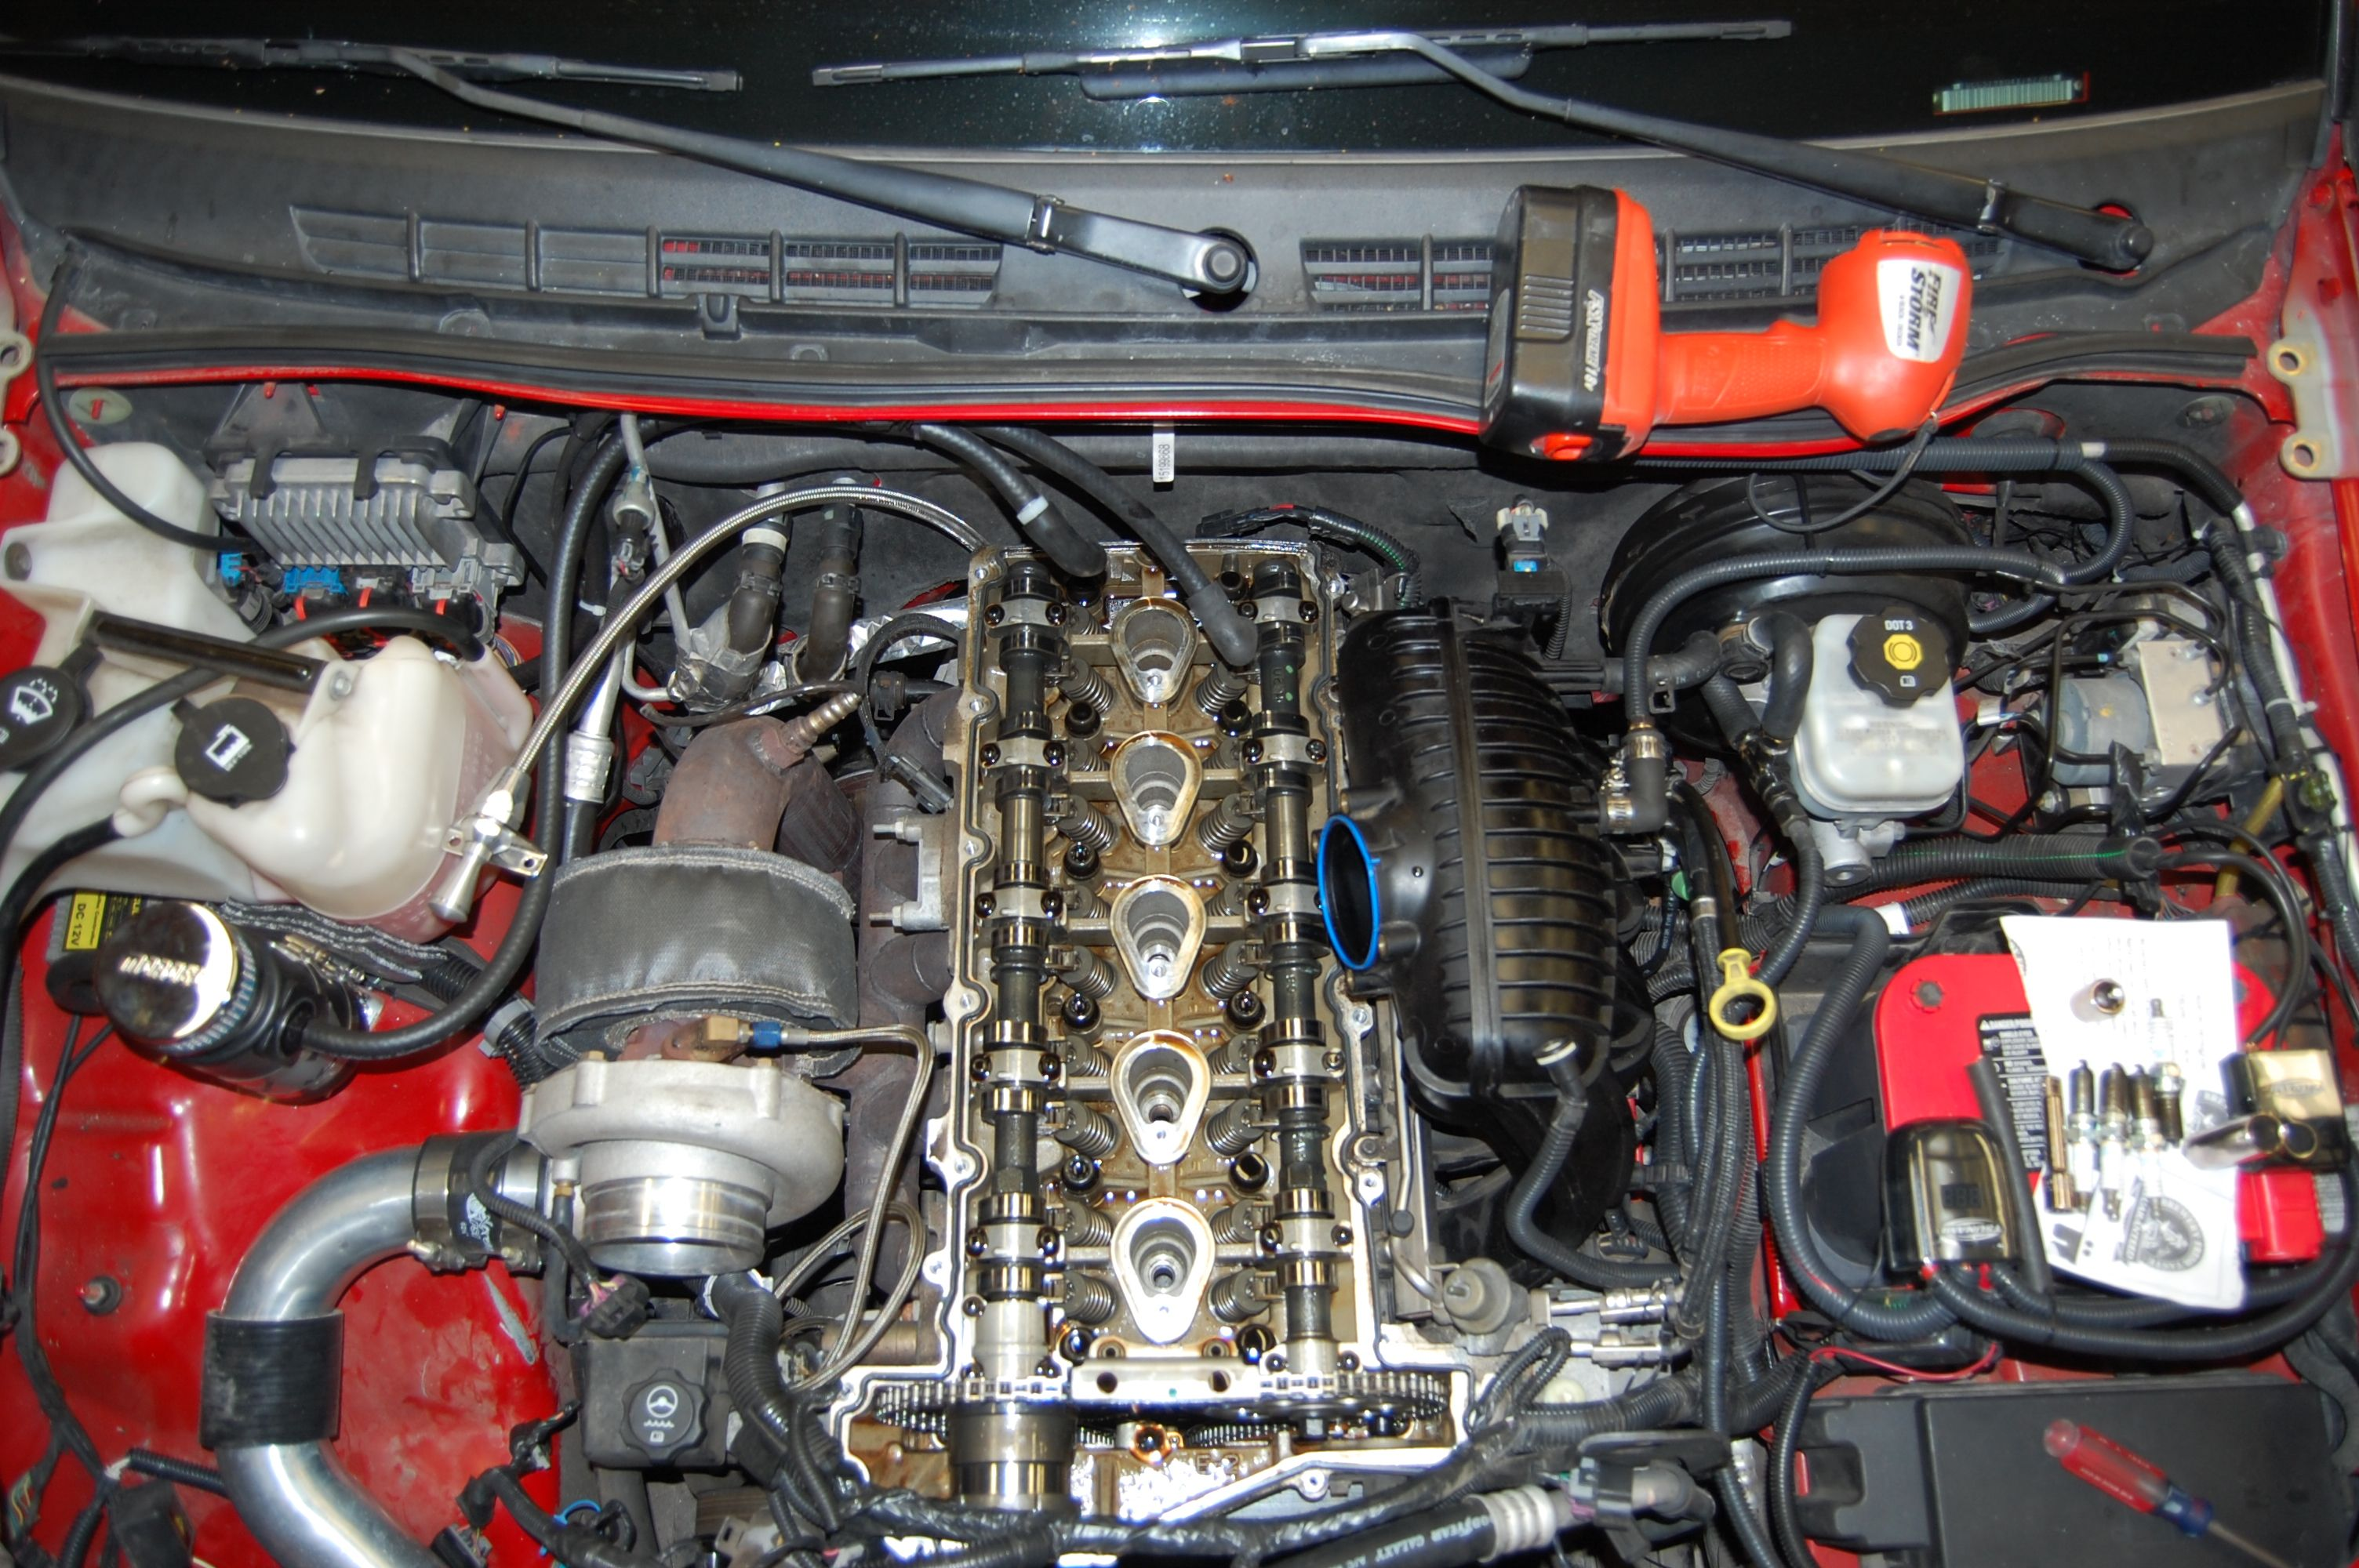 Toyota Ta A Oil Drain Plug Location as well Toyota Sequoia Fuel Filter Service furthermore 4age Wiring Diagram Get Free Image About in addition Toyota Avalon Oxygen Sensor Location besides 2005 Toyota Camry Parts Diagram. on toyota ta a 4 cylinder engine diagram